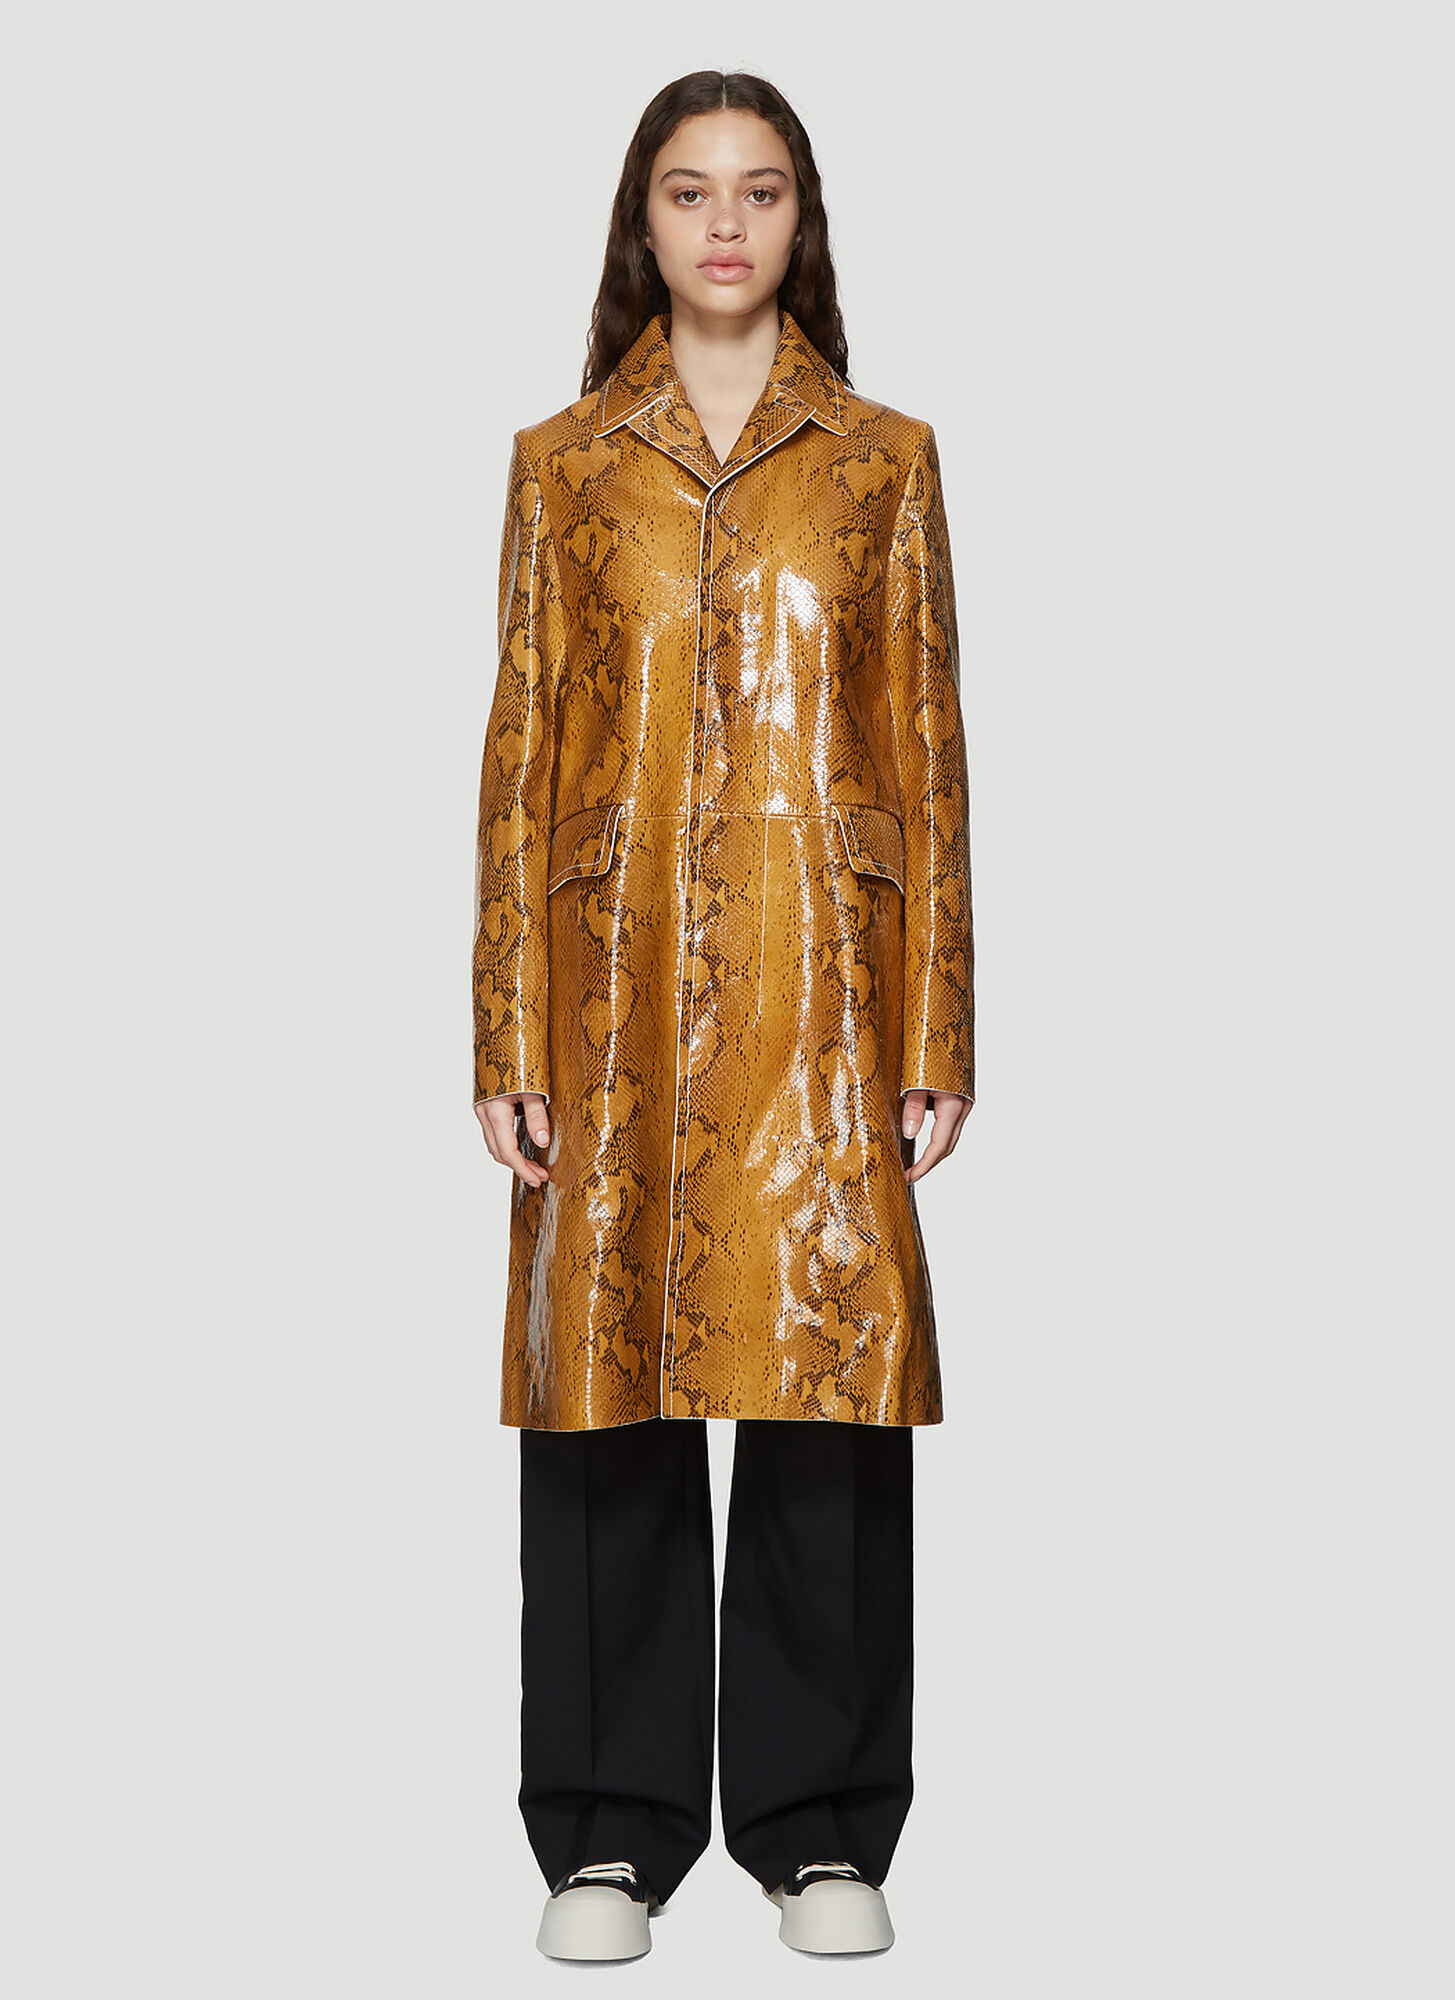 Marni Snakeskin Print Leather Coat in Brown